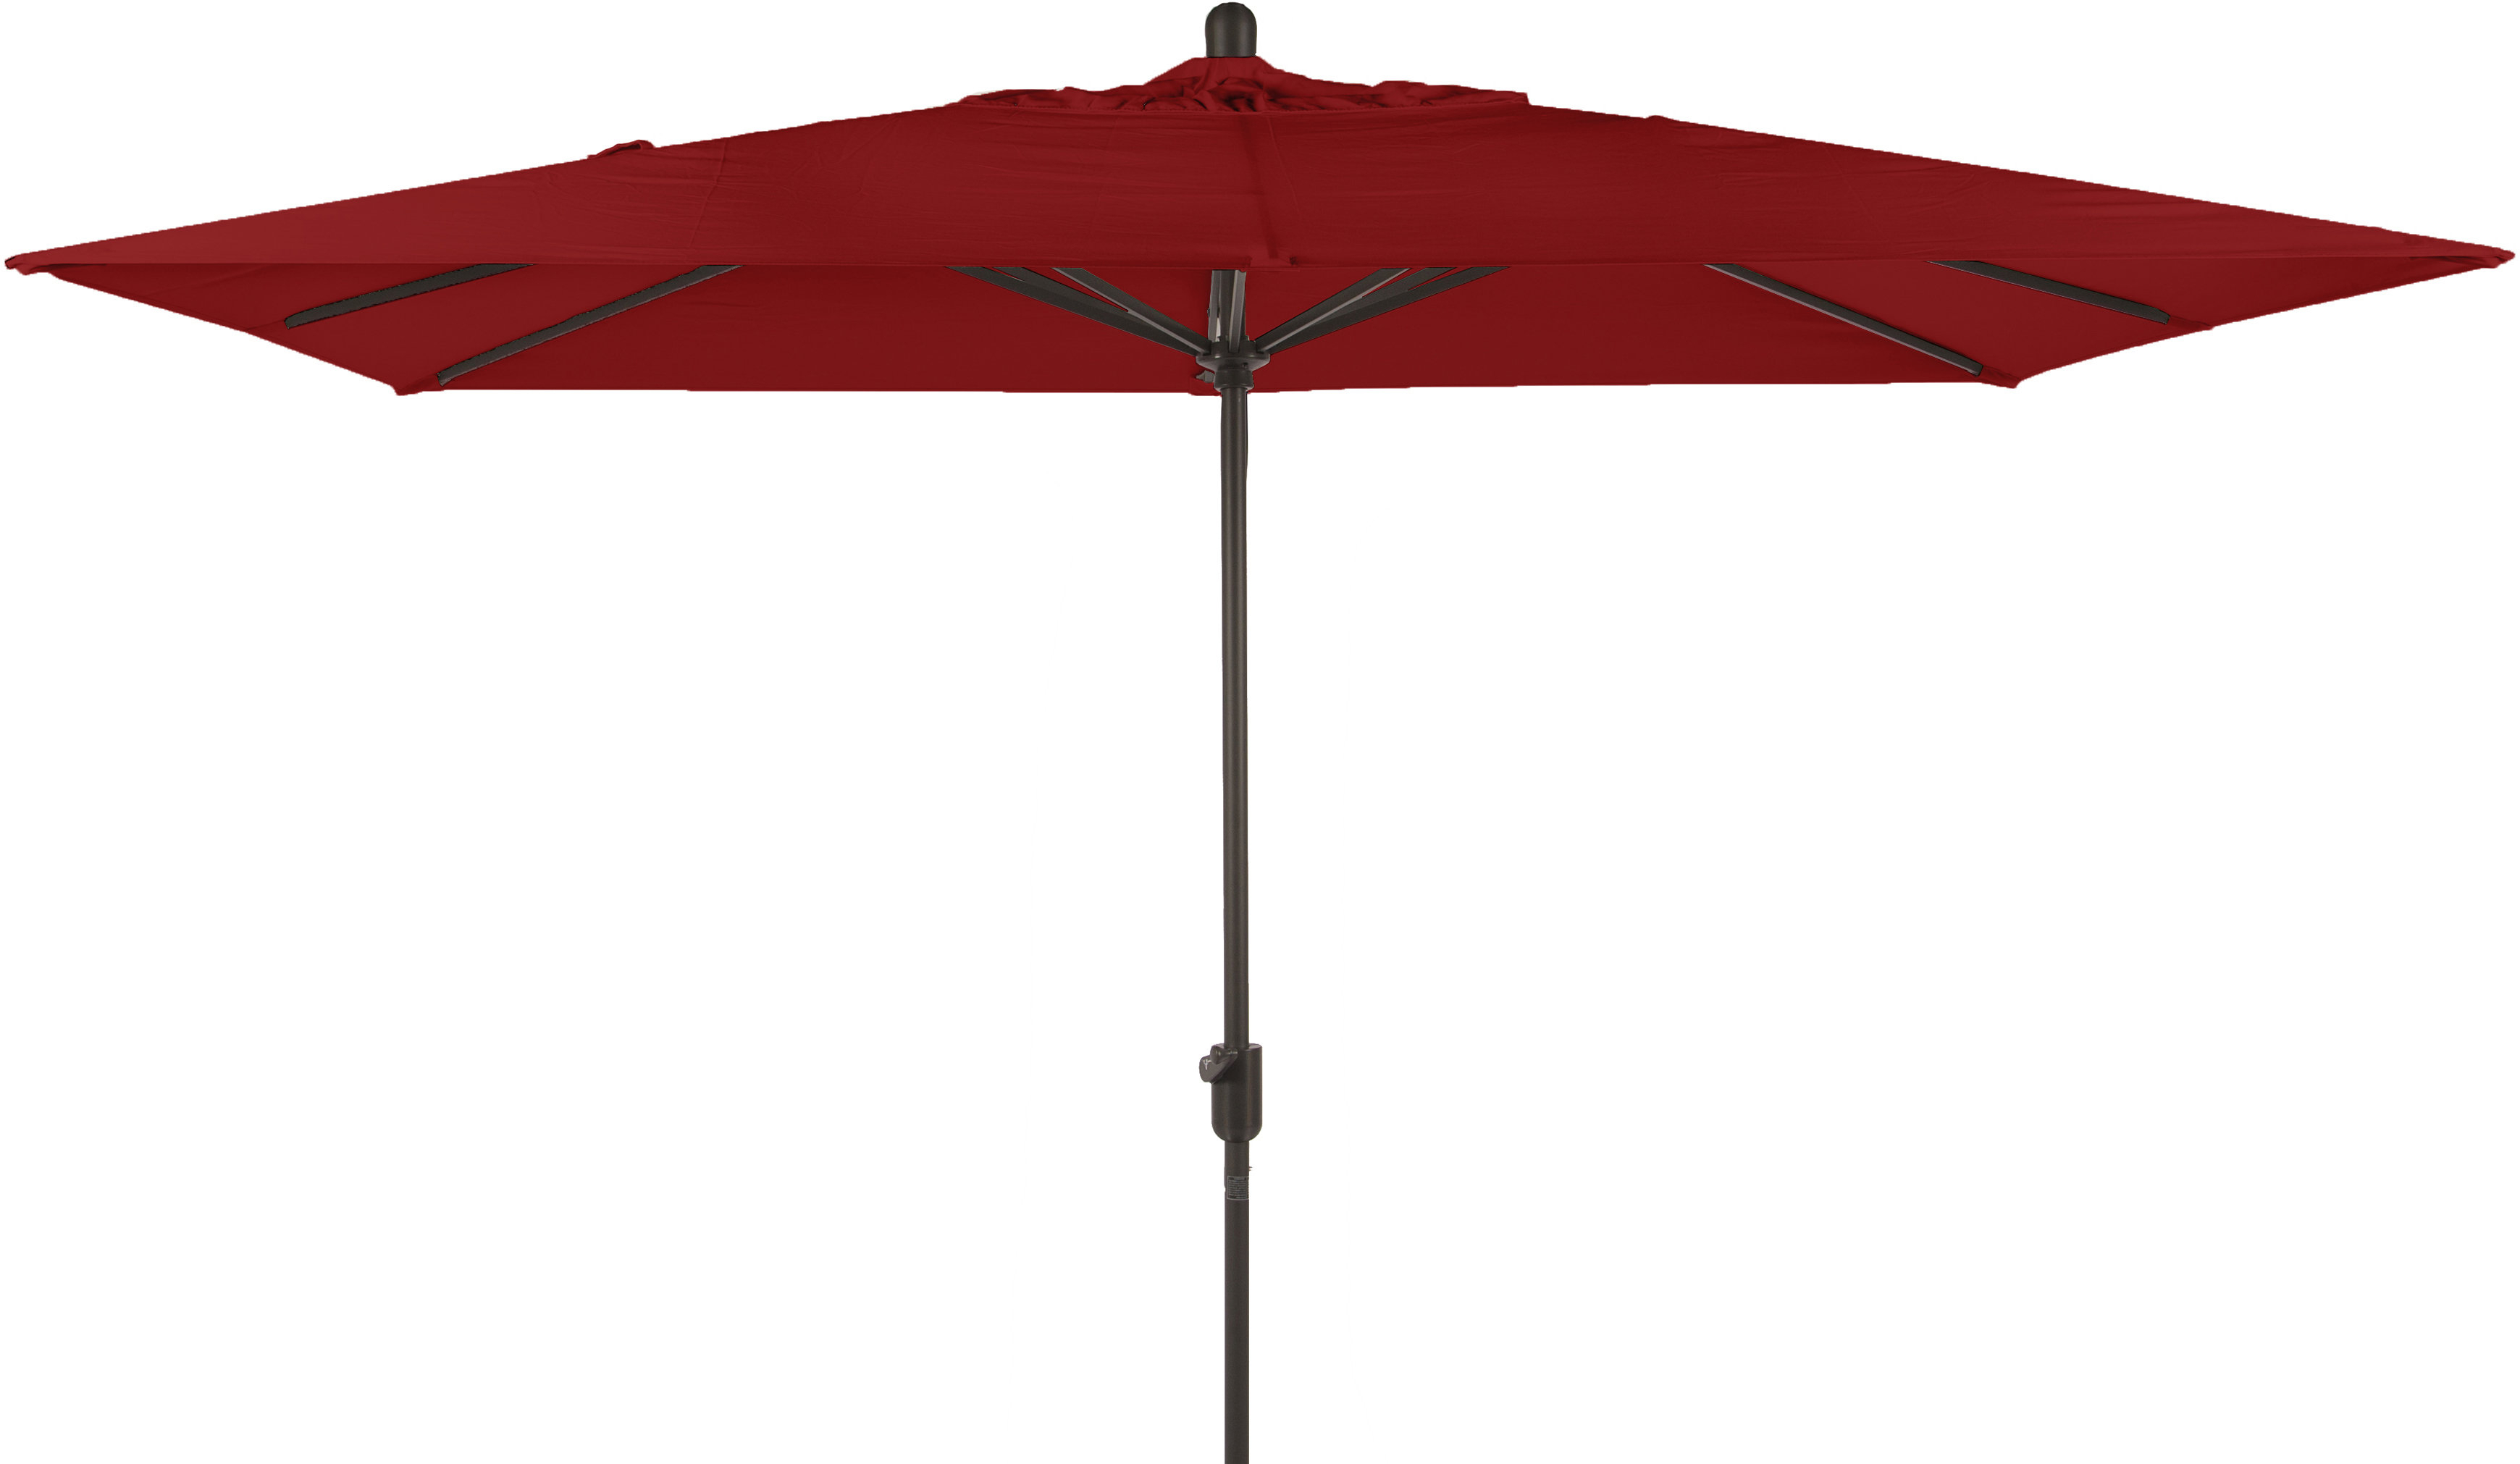 Alexander Elastic Rectangular Market Sunbrella Umbrellas Pertaining To Most Recent Alexander 10' X (View 3 of 20)